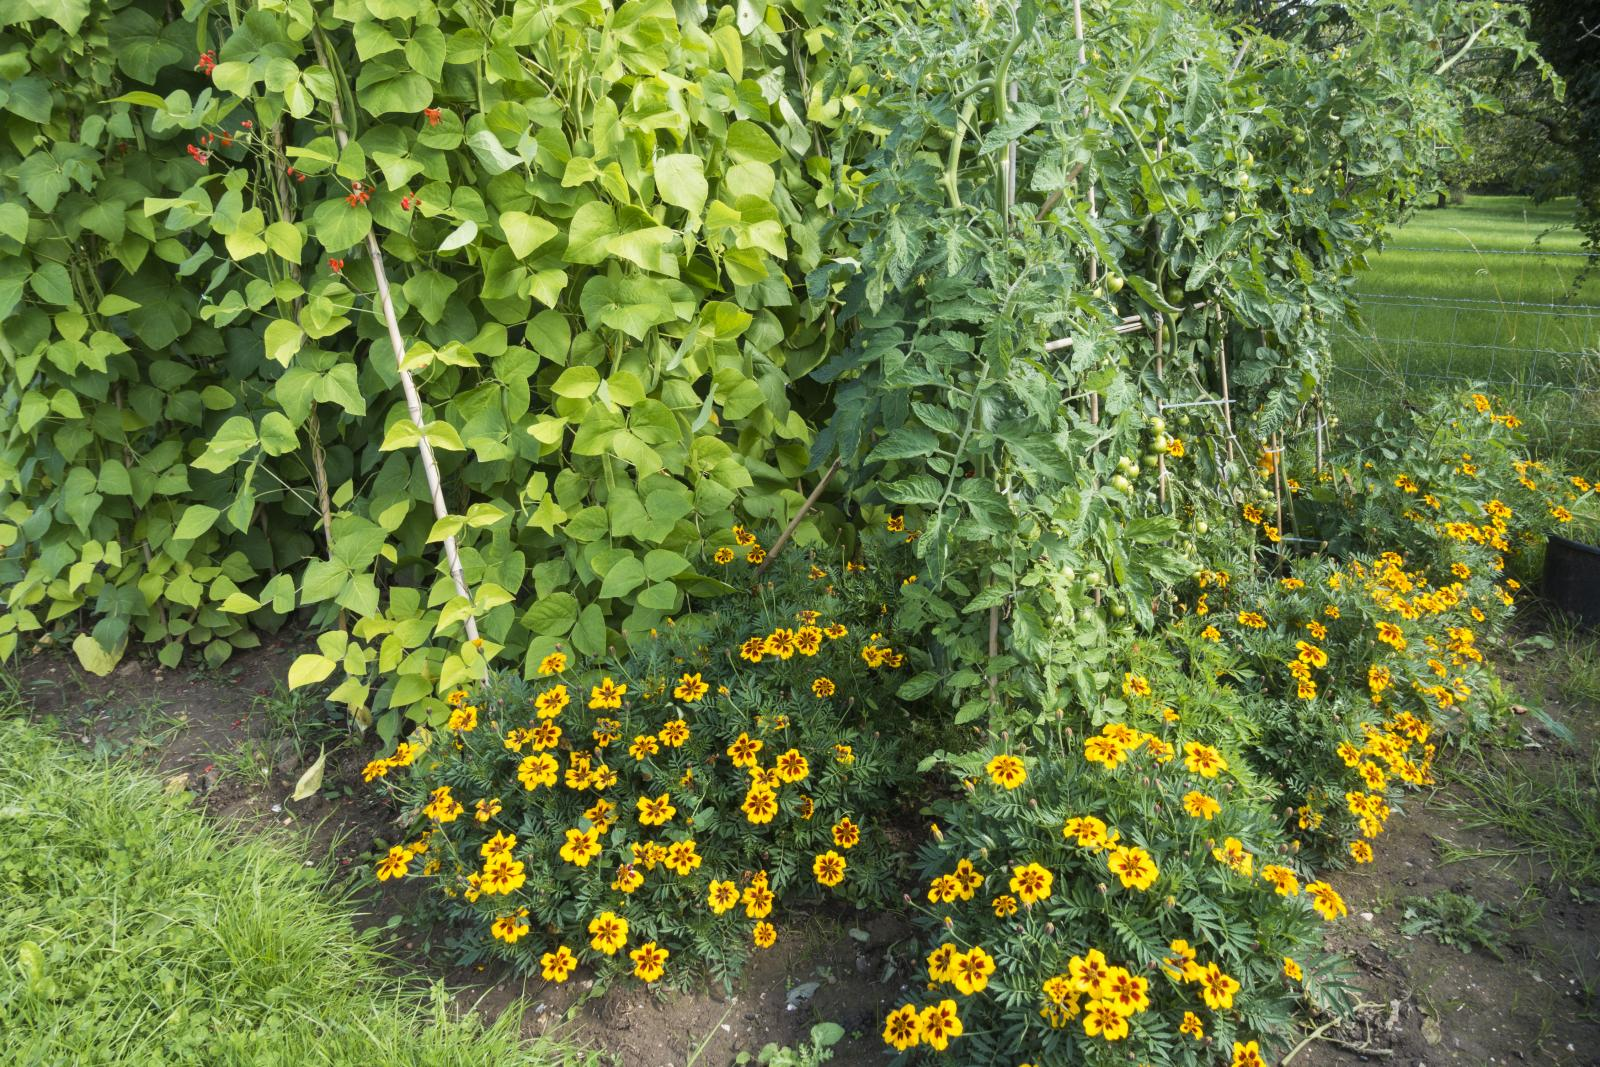 Companion planting to deter pests